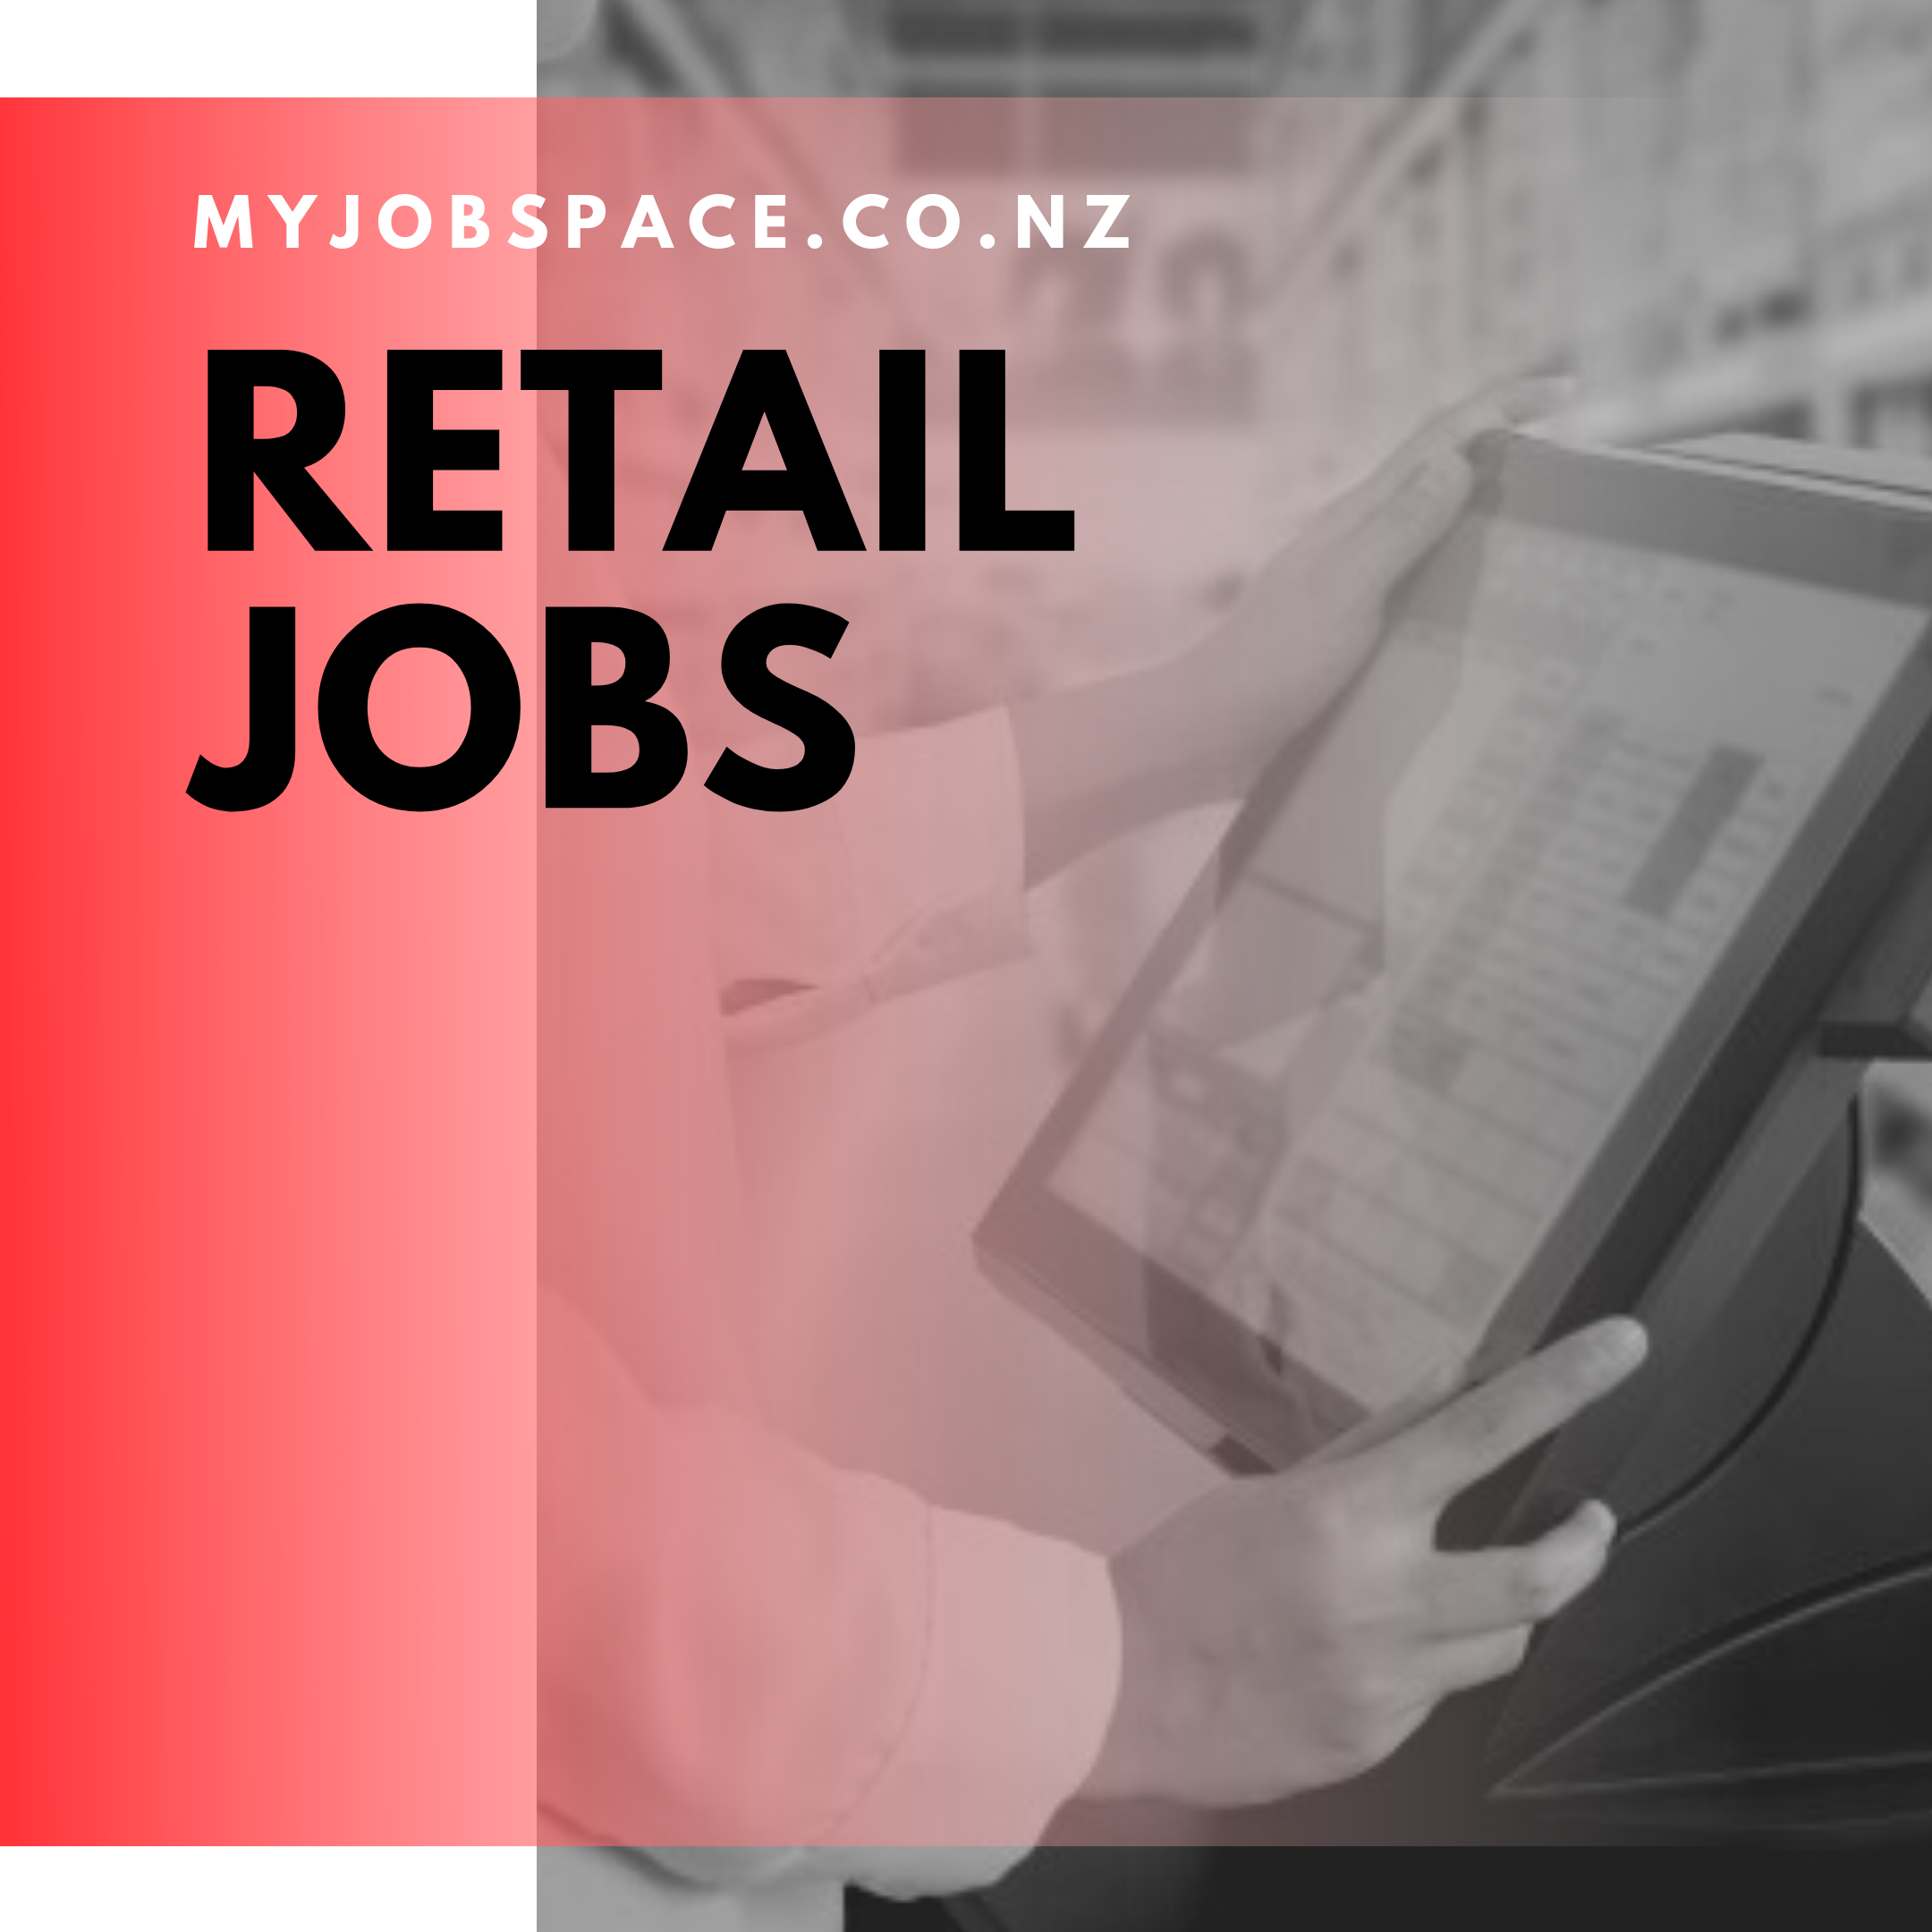 How to Get Best Options for Retail Jobs in New Zealand?